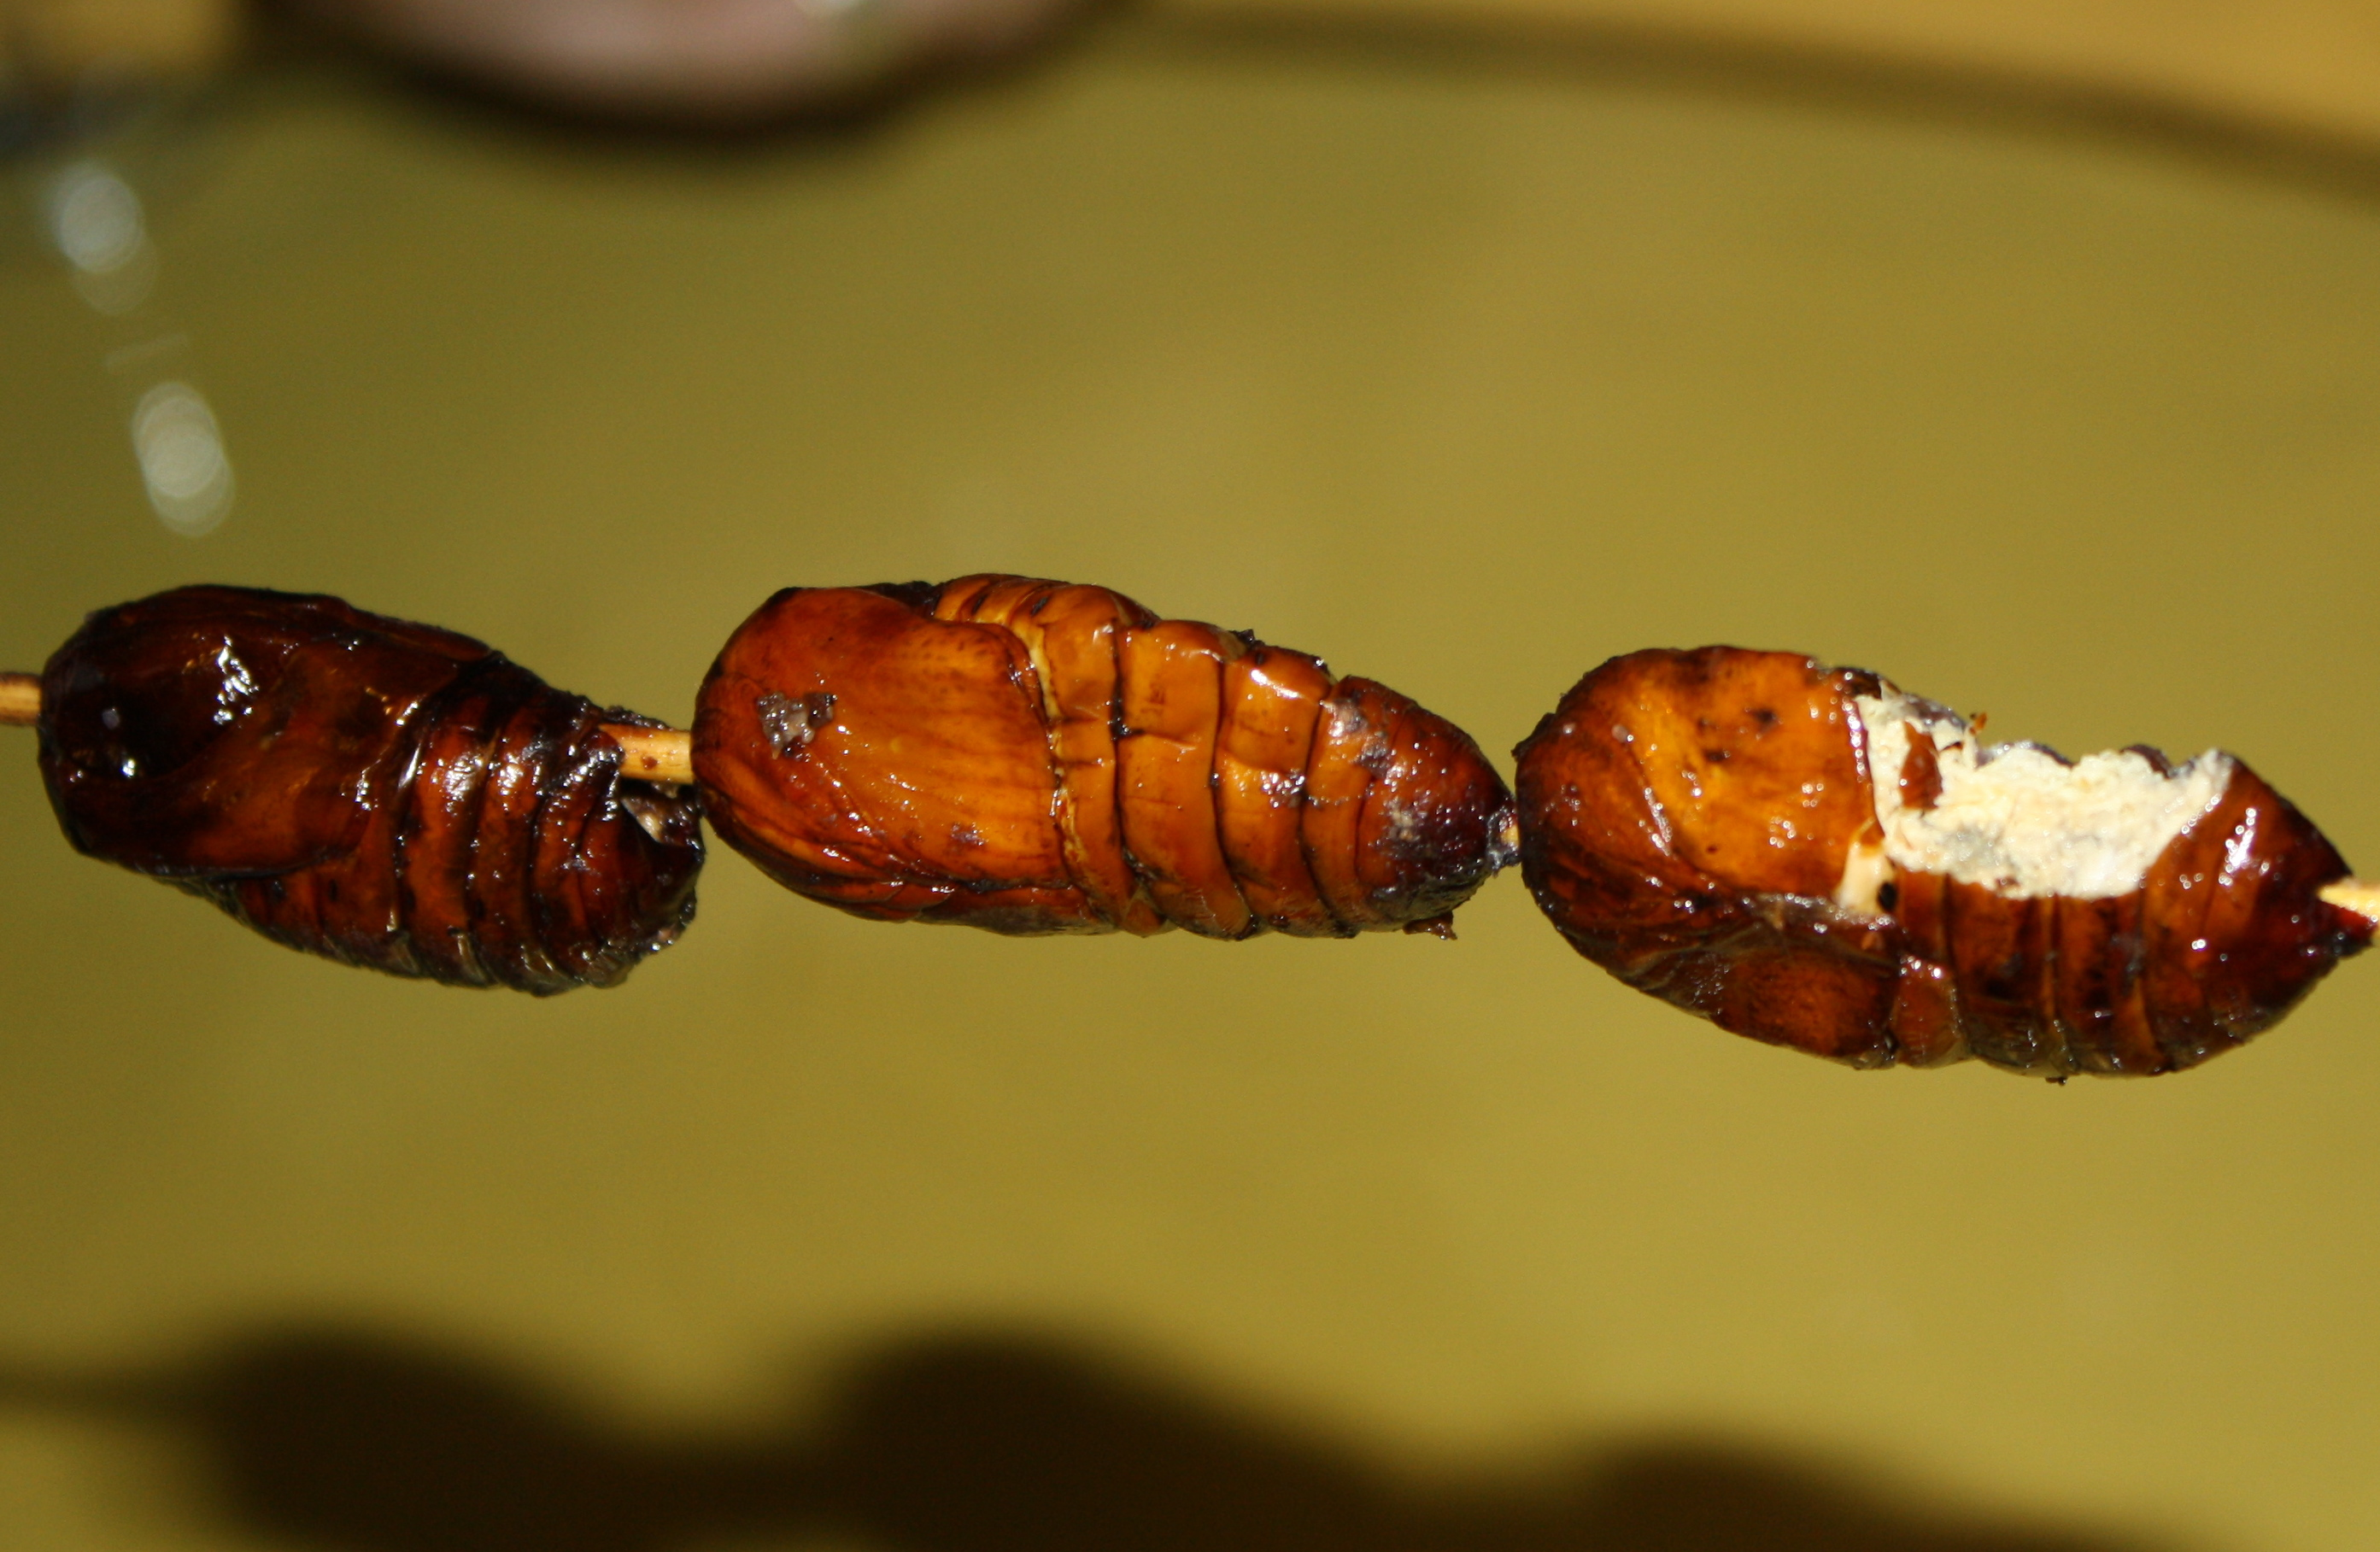 Fried Silkworm in China